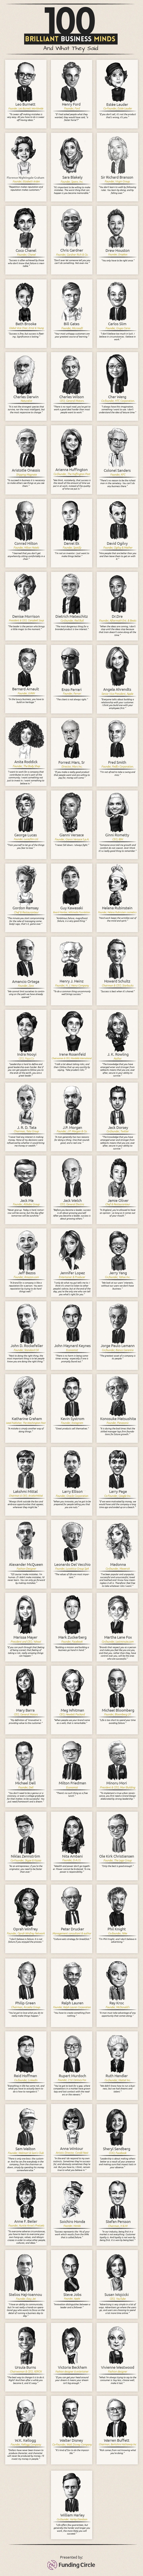 100 Inspirational Quotes From Successful Business Leaders By Larry Kim Marketing And Entrepreneurship Medium